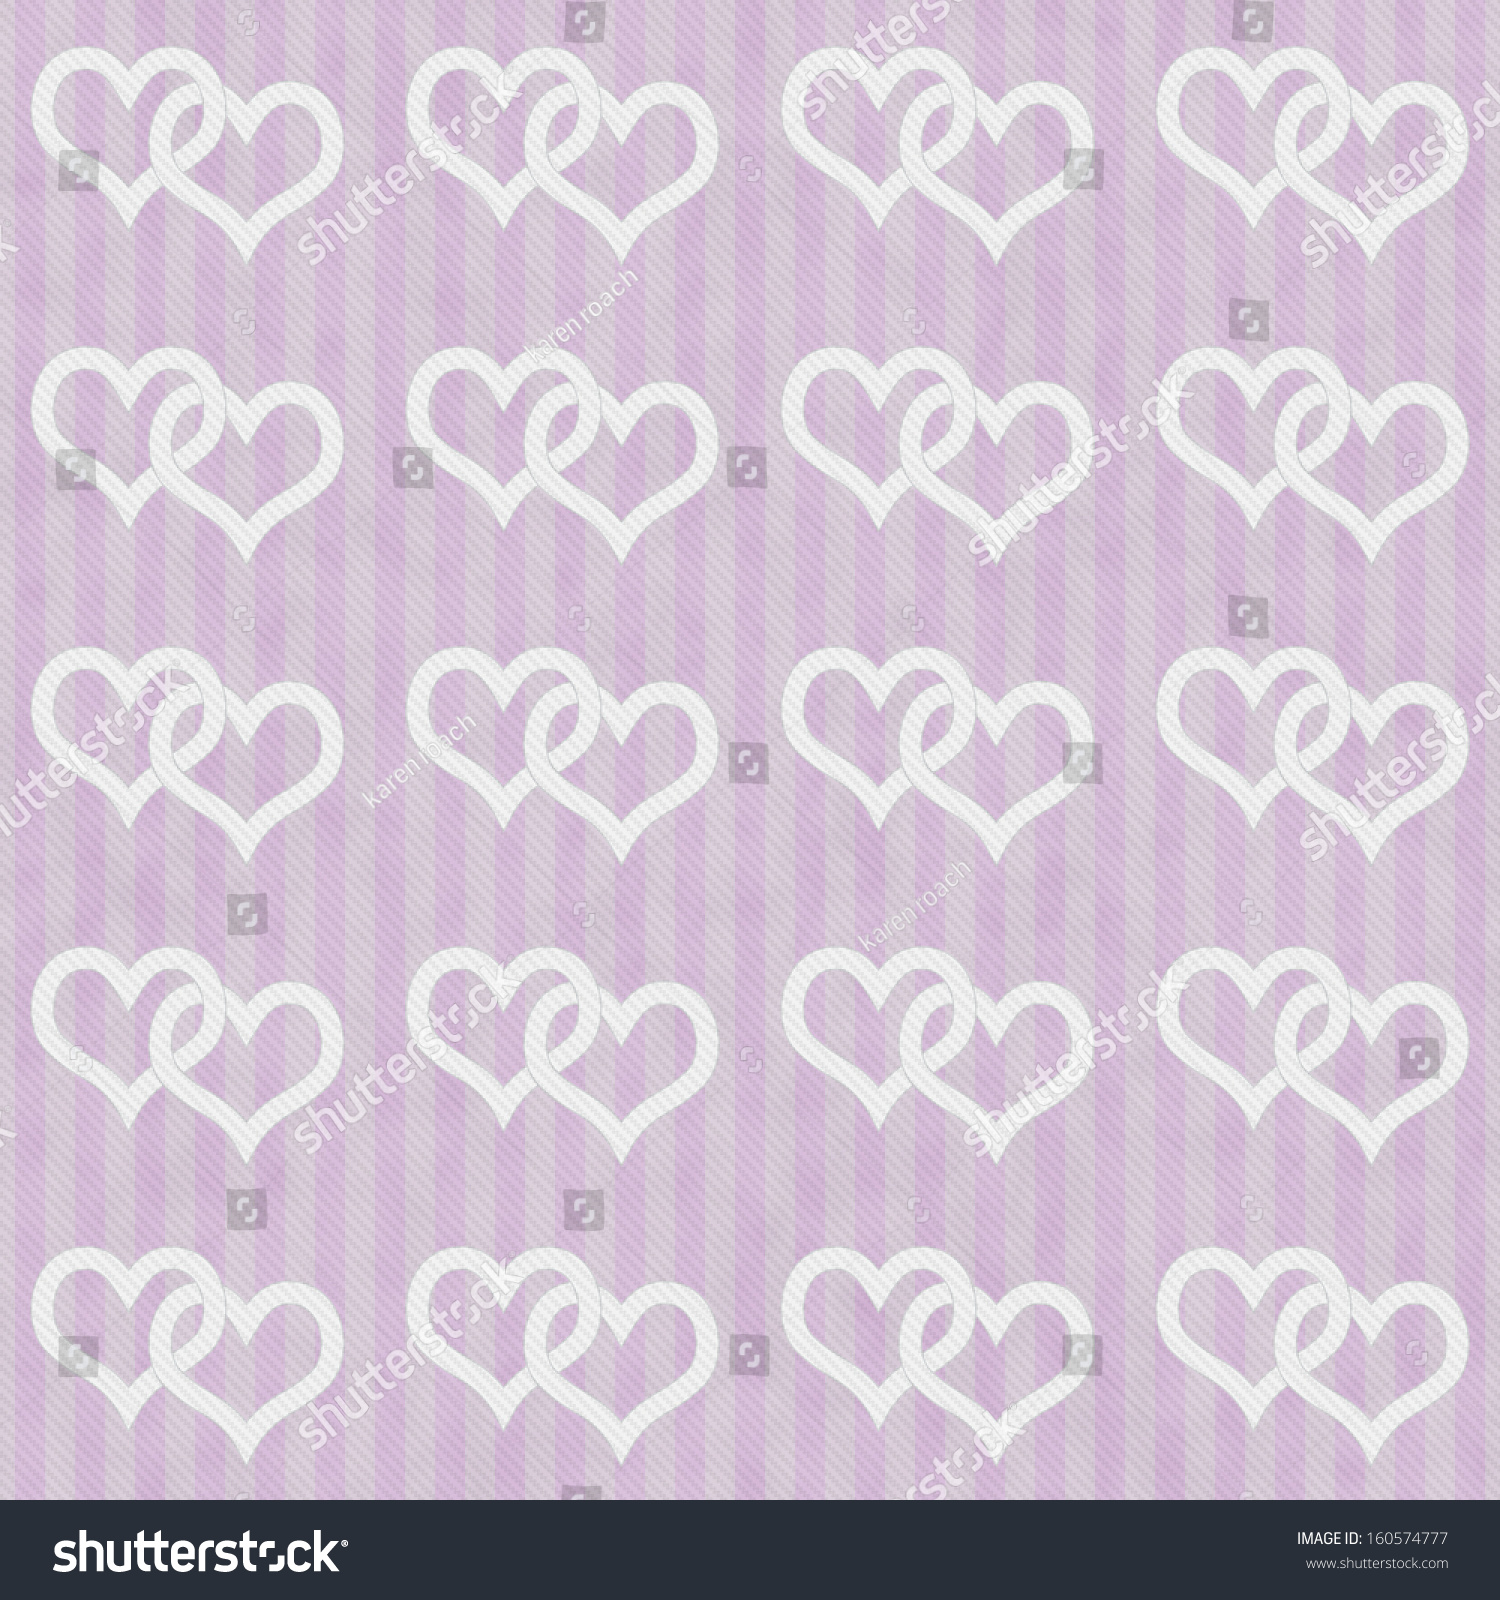 pink and white hearts and stripes textured fabric background that is